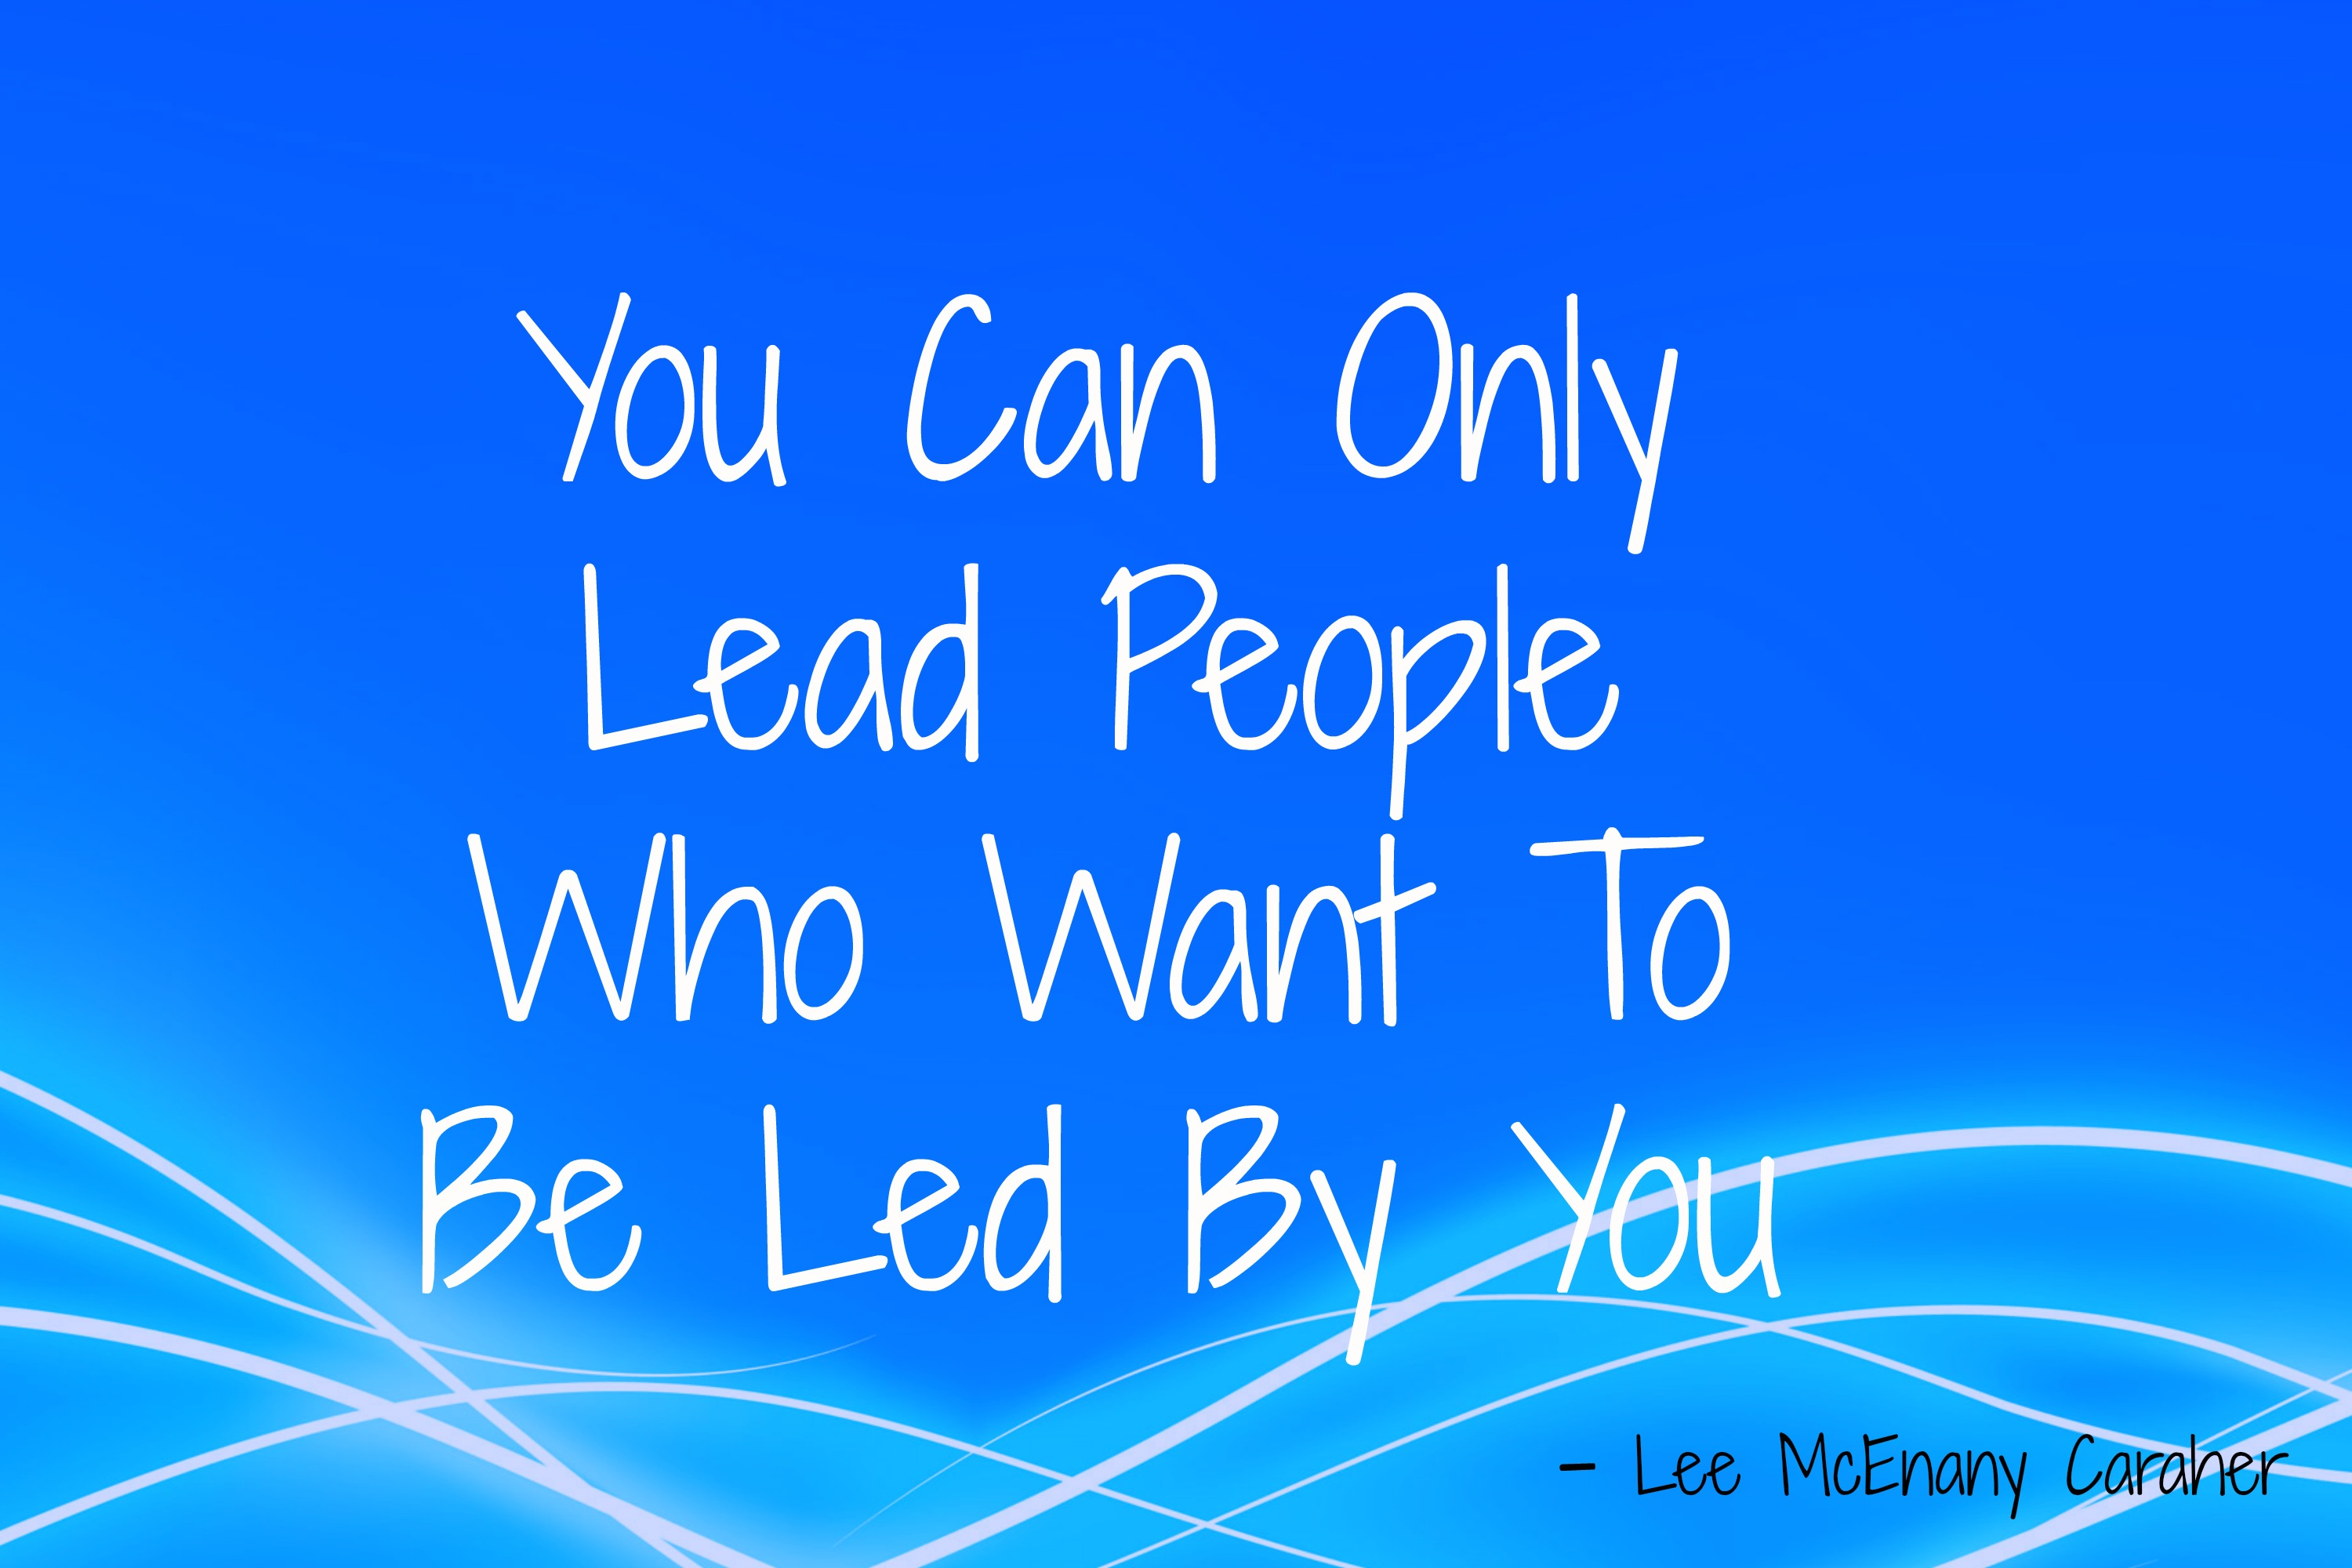 Leadership: You Can Only Lead Those Who Want To Be Led